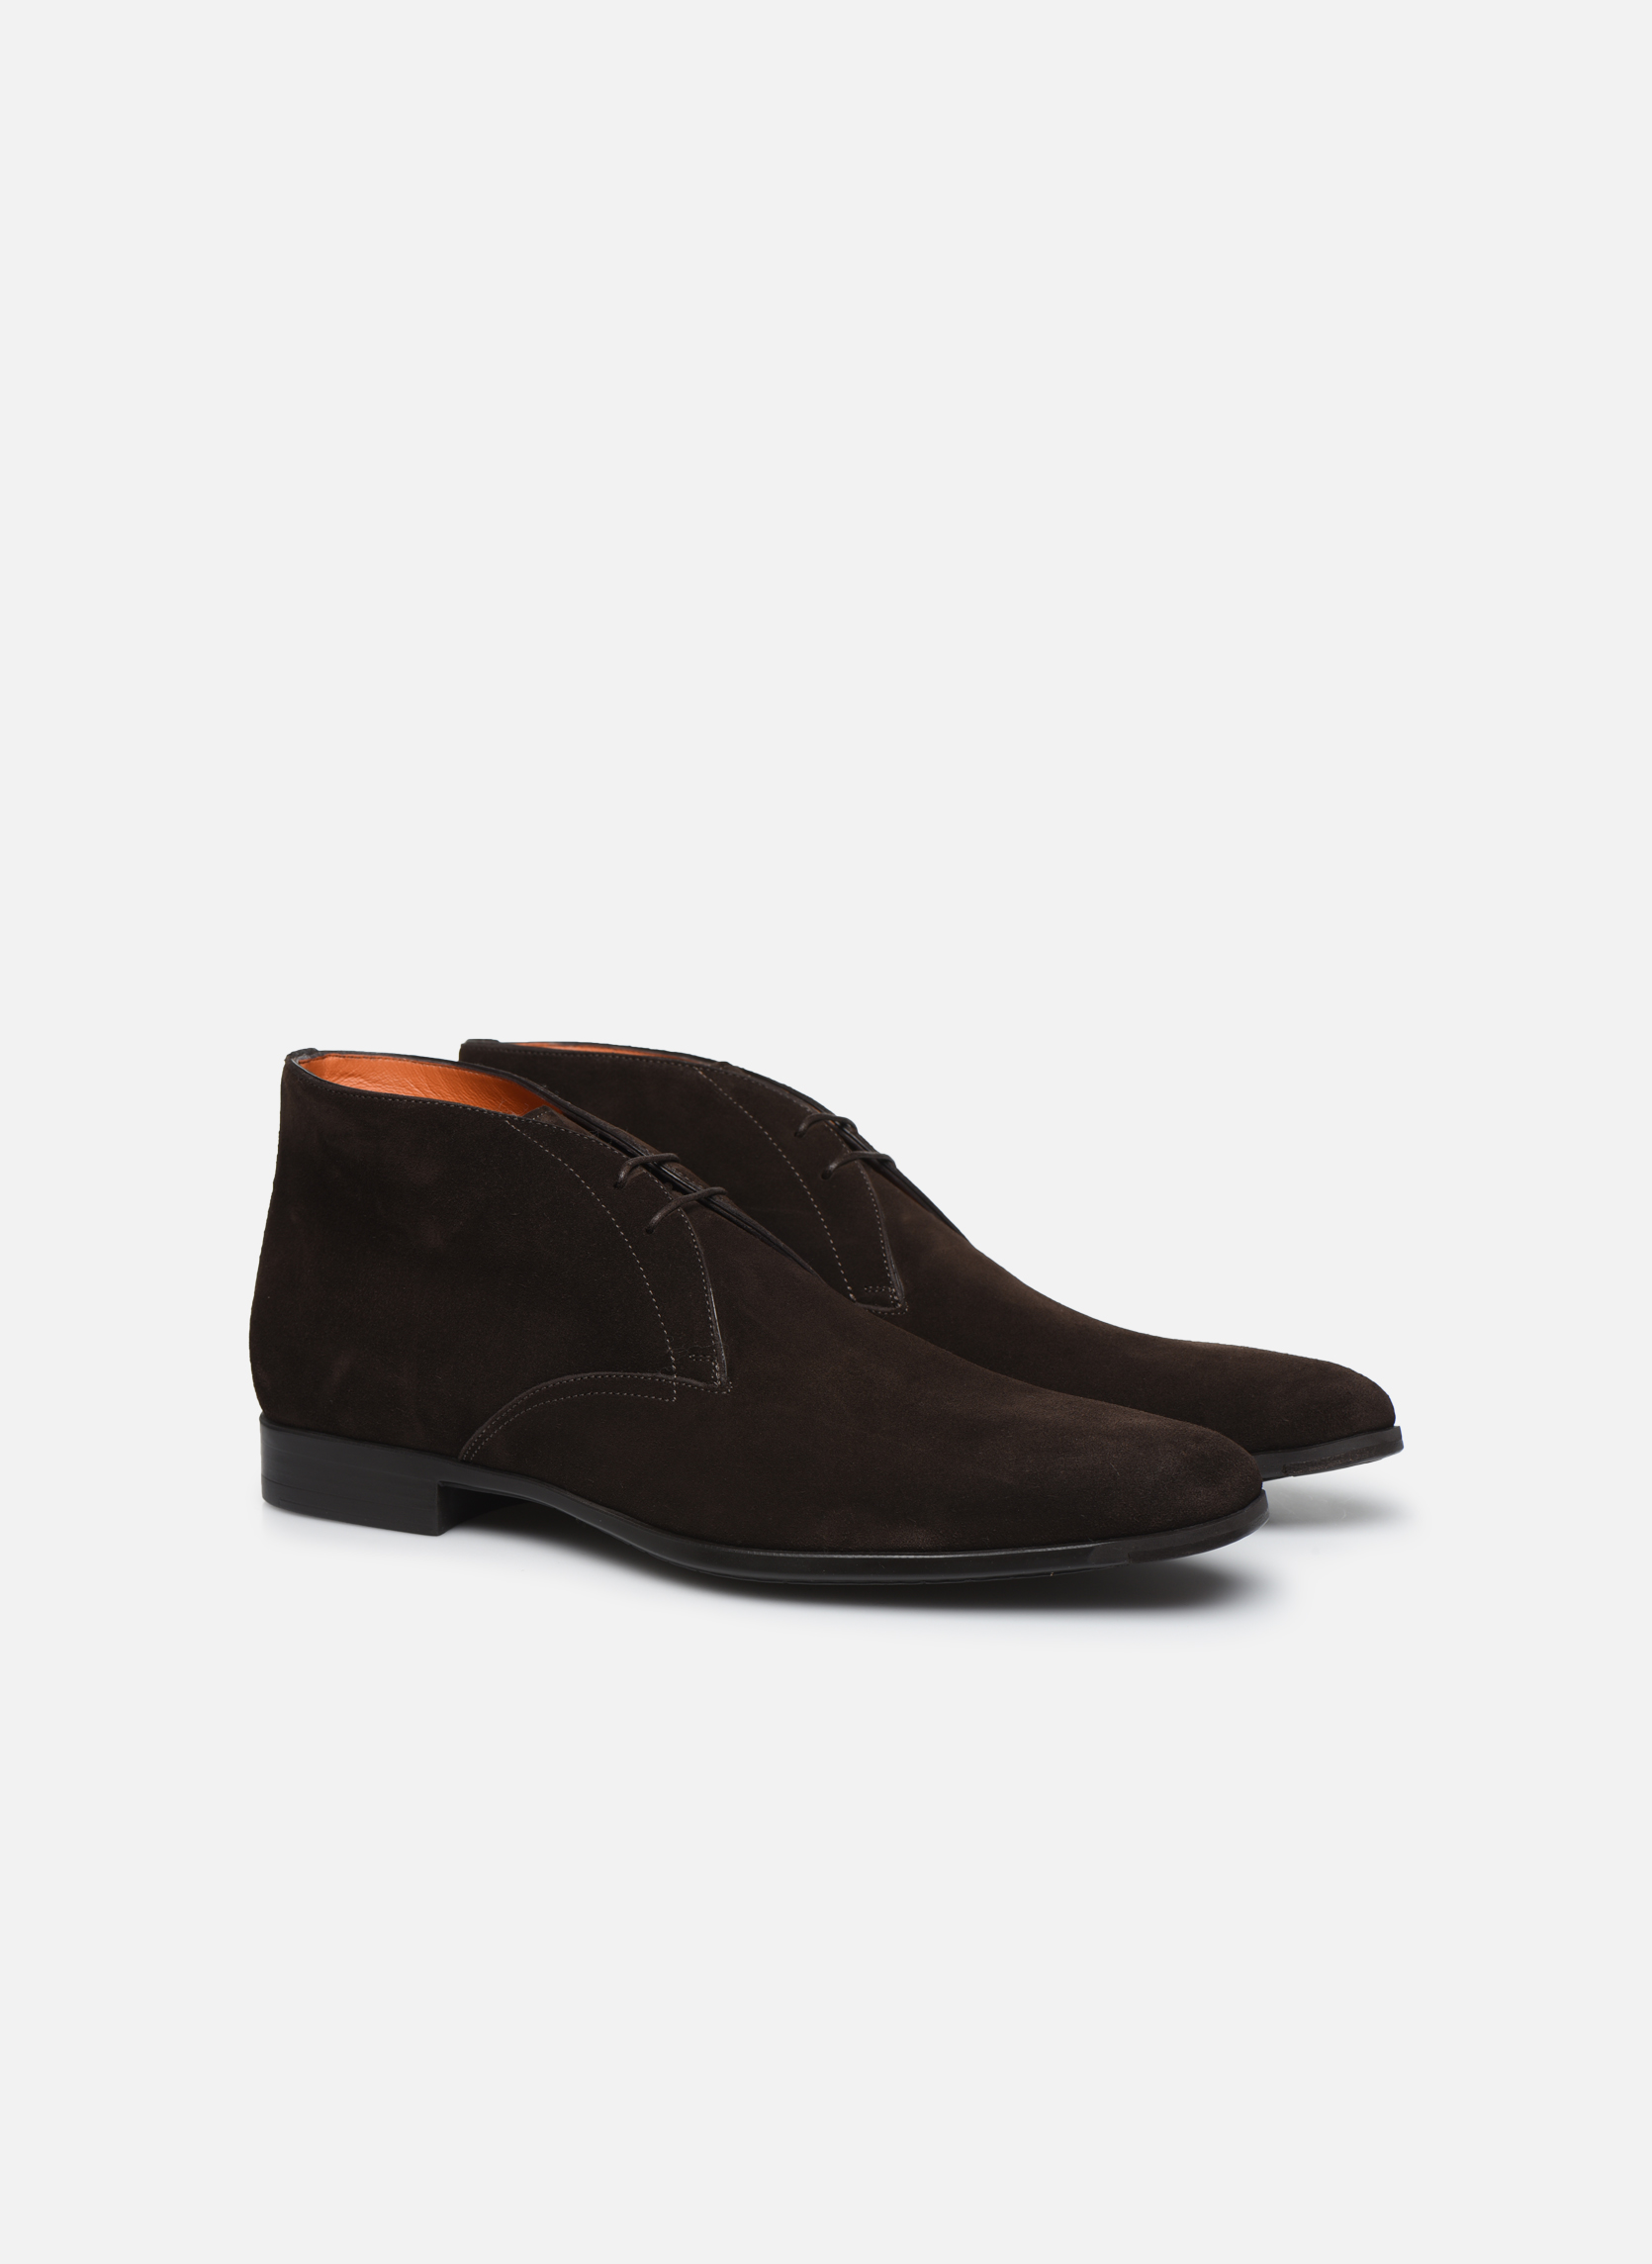 William 7416 marron